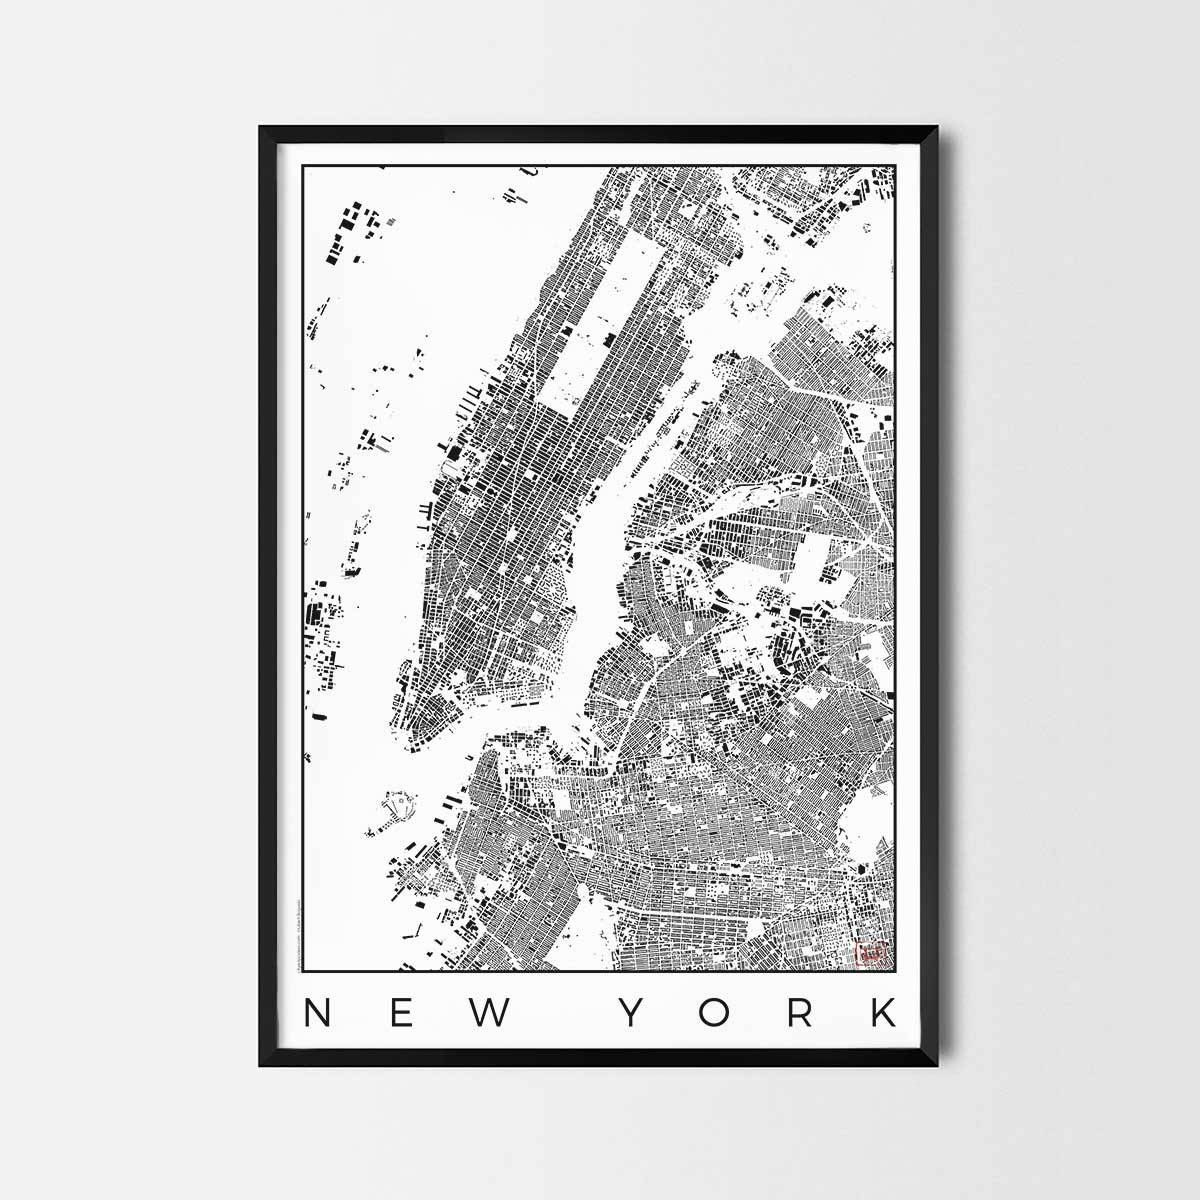 City Art Posters | Map Posters And Art Prints – Gifts For City Inside Most Current City Prints Map Wall Art (View 6 of 20)